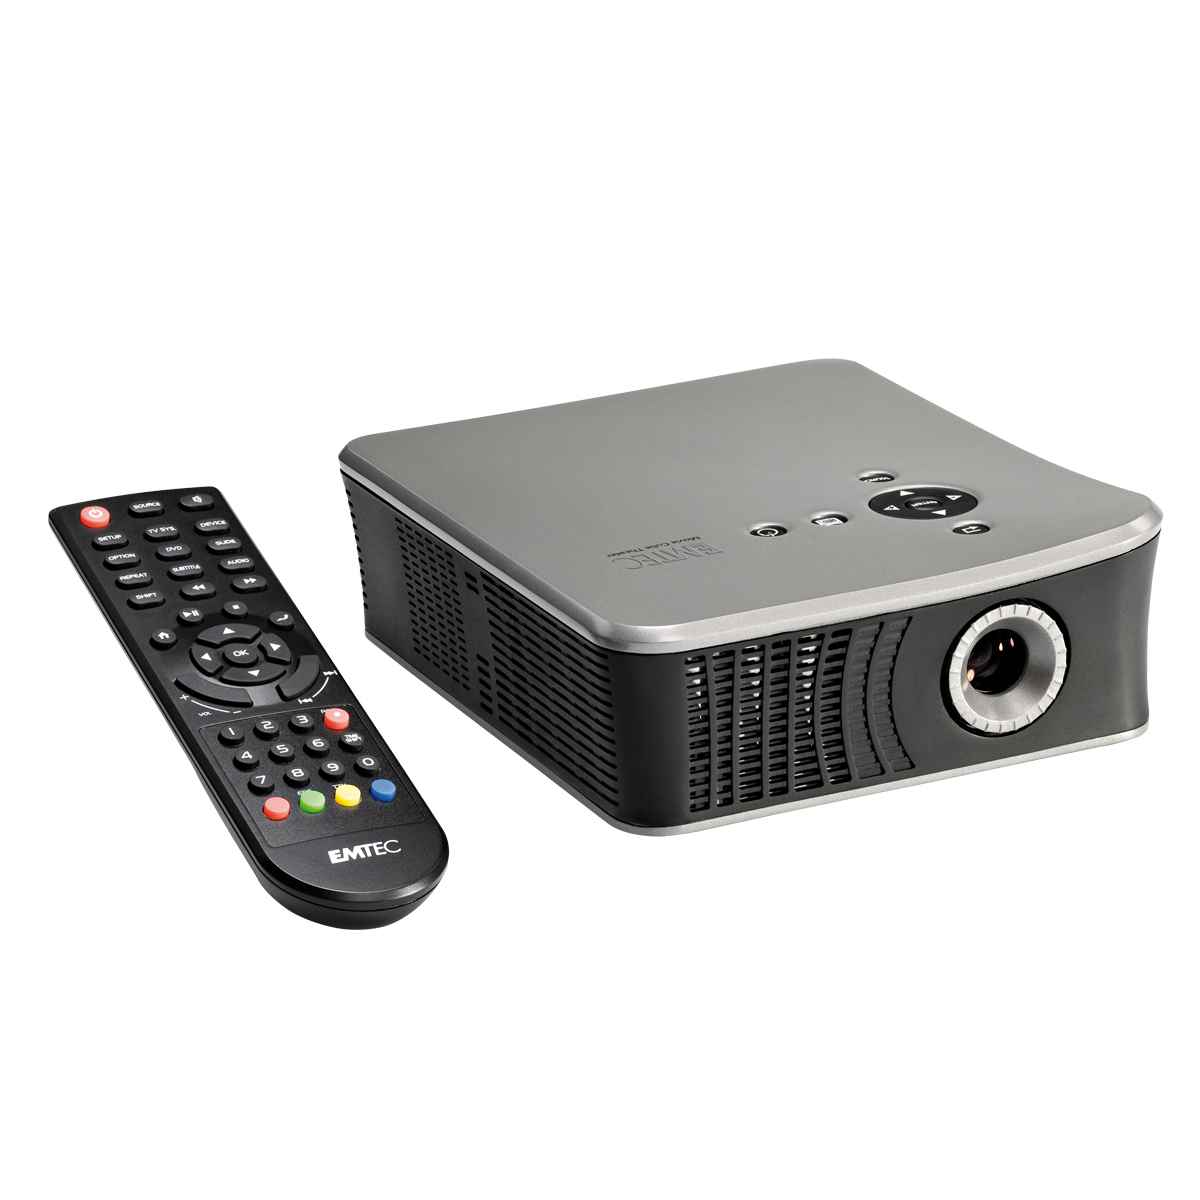 Emtec Movie Cube Theater T800 500gb